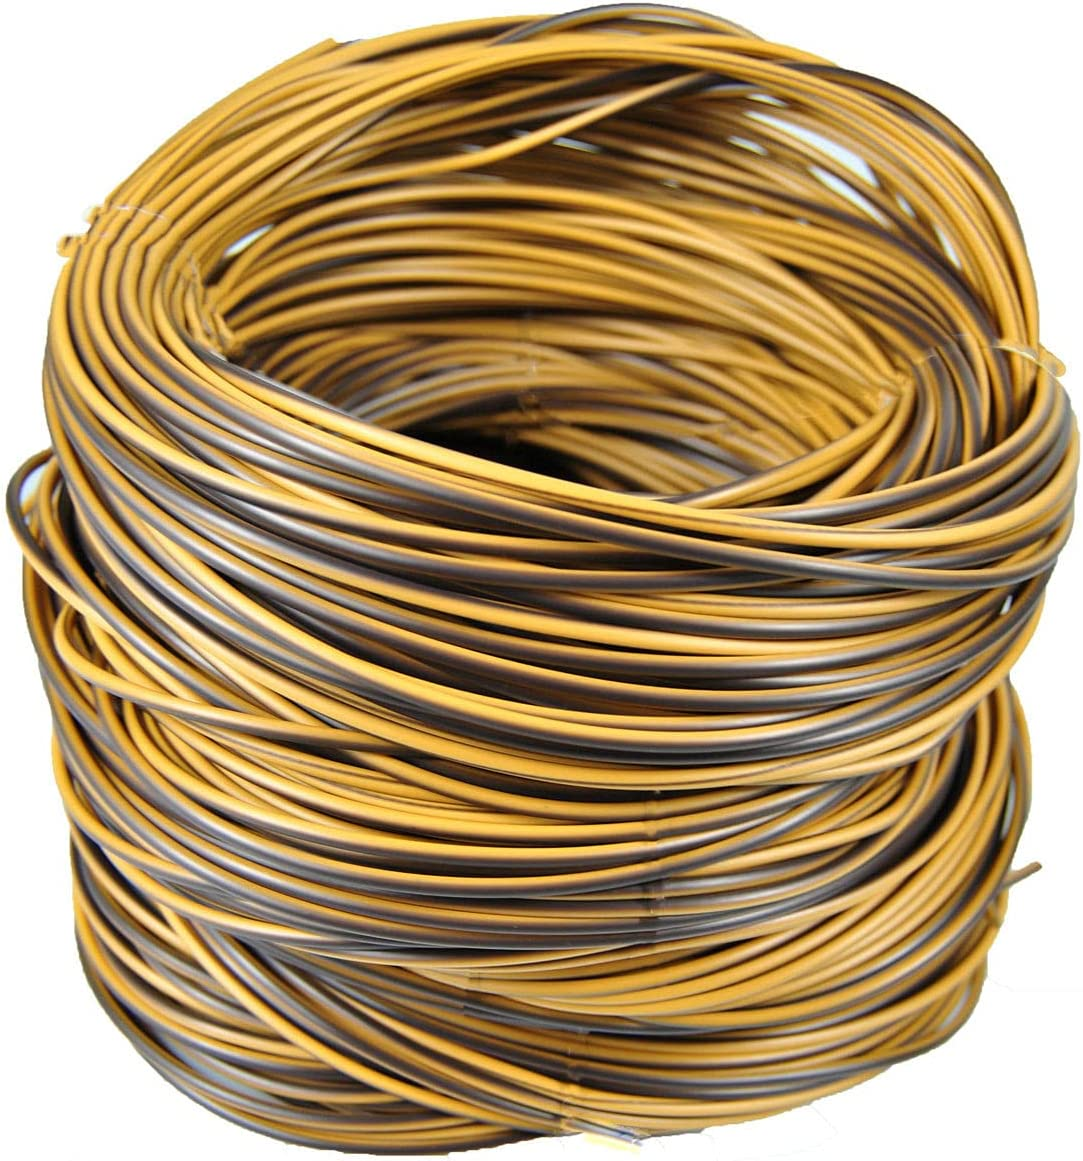 Rattan Repair Kit,Round Synthetic Rattan Fix Vinyl Plastic Waterproof Woven Rattan Ribbon for Garden Patio Furniture and Rattan Chair Couch Basket Replacement-0.55LB(Round Yellow Brown)